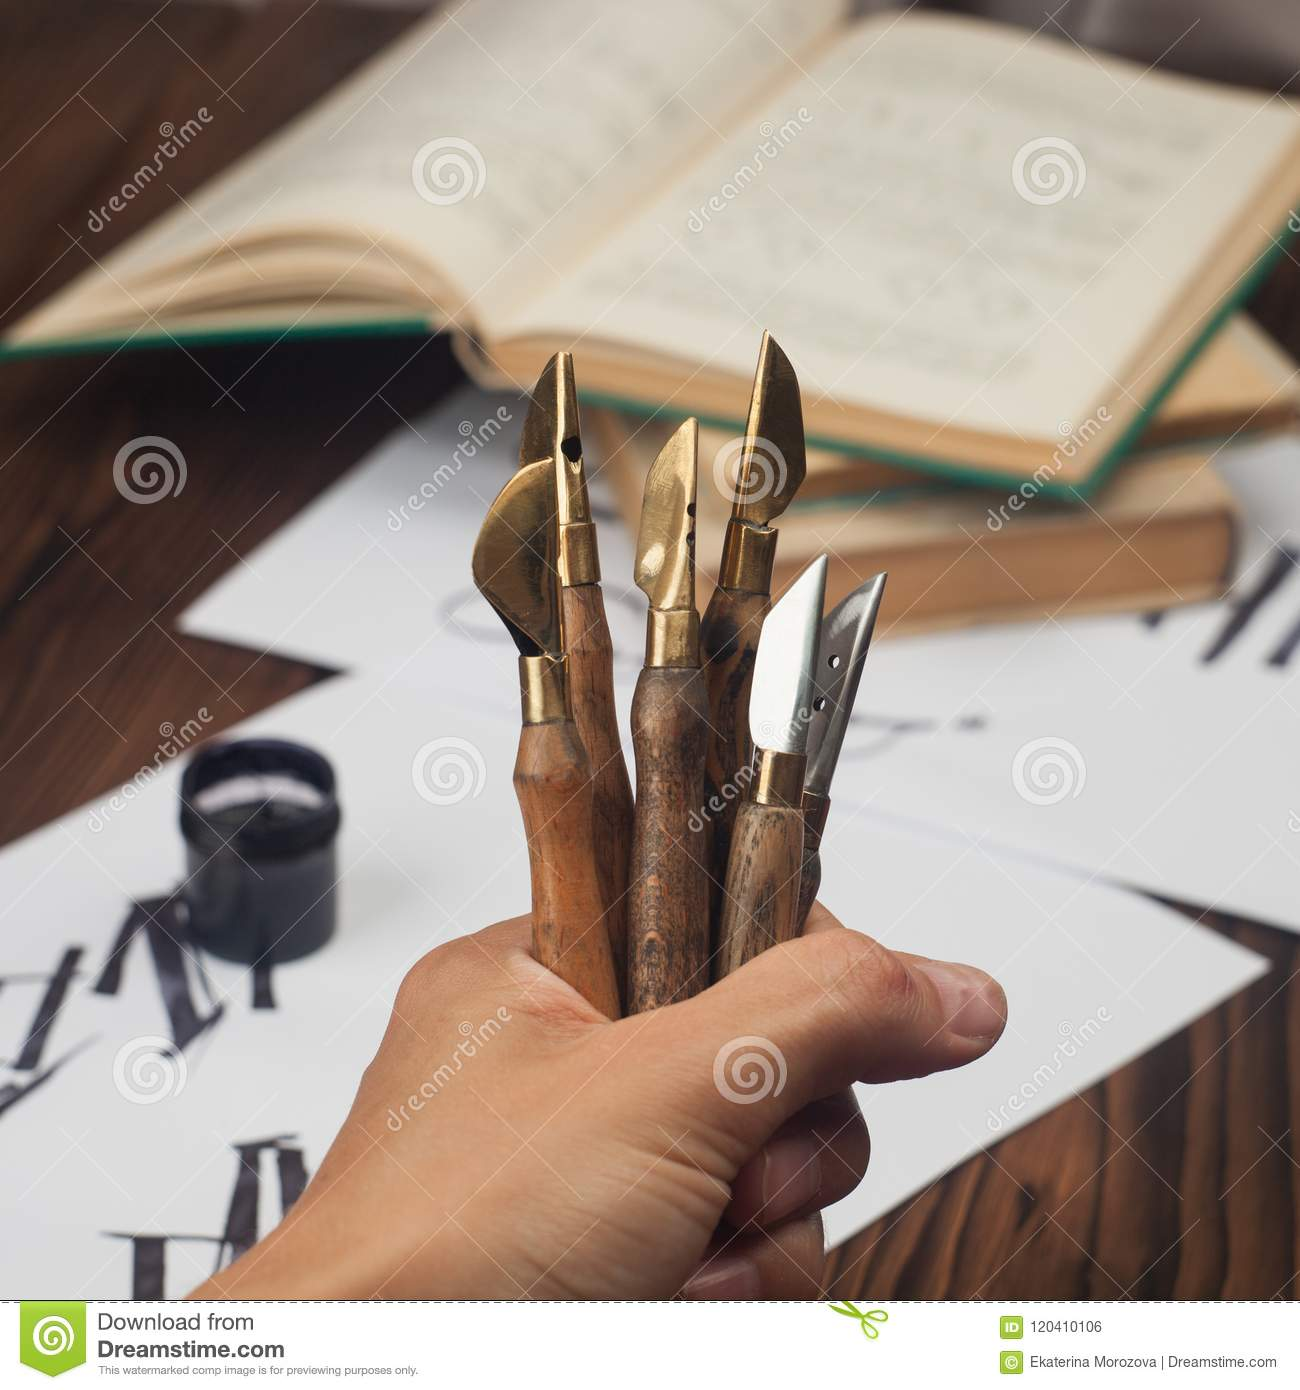 Calligraphy handwriting accessories, style fountain pens nib collection in hand, abstract paper and wooden background. Toned Photo